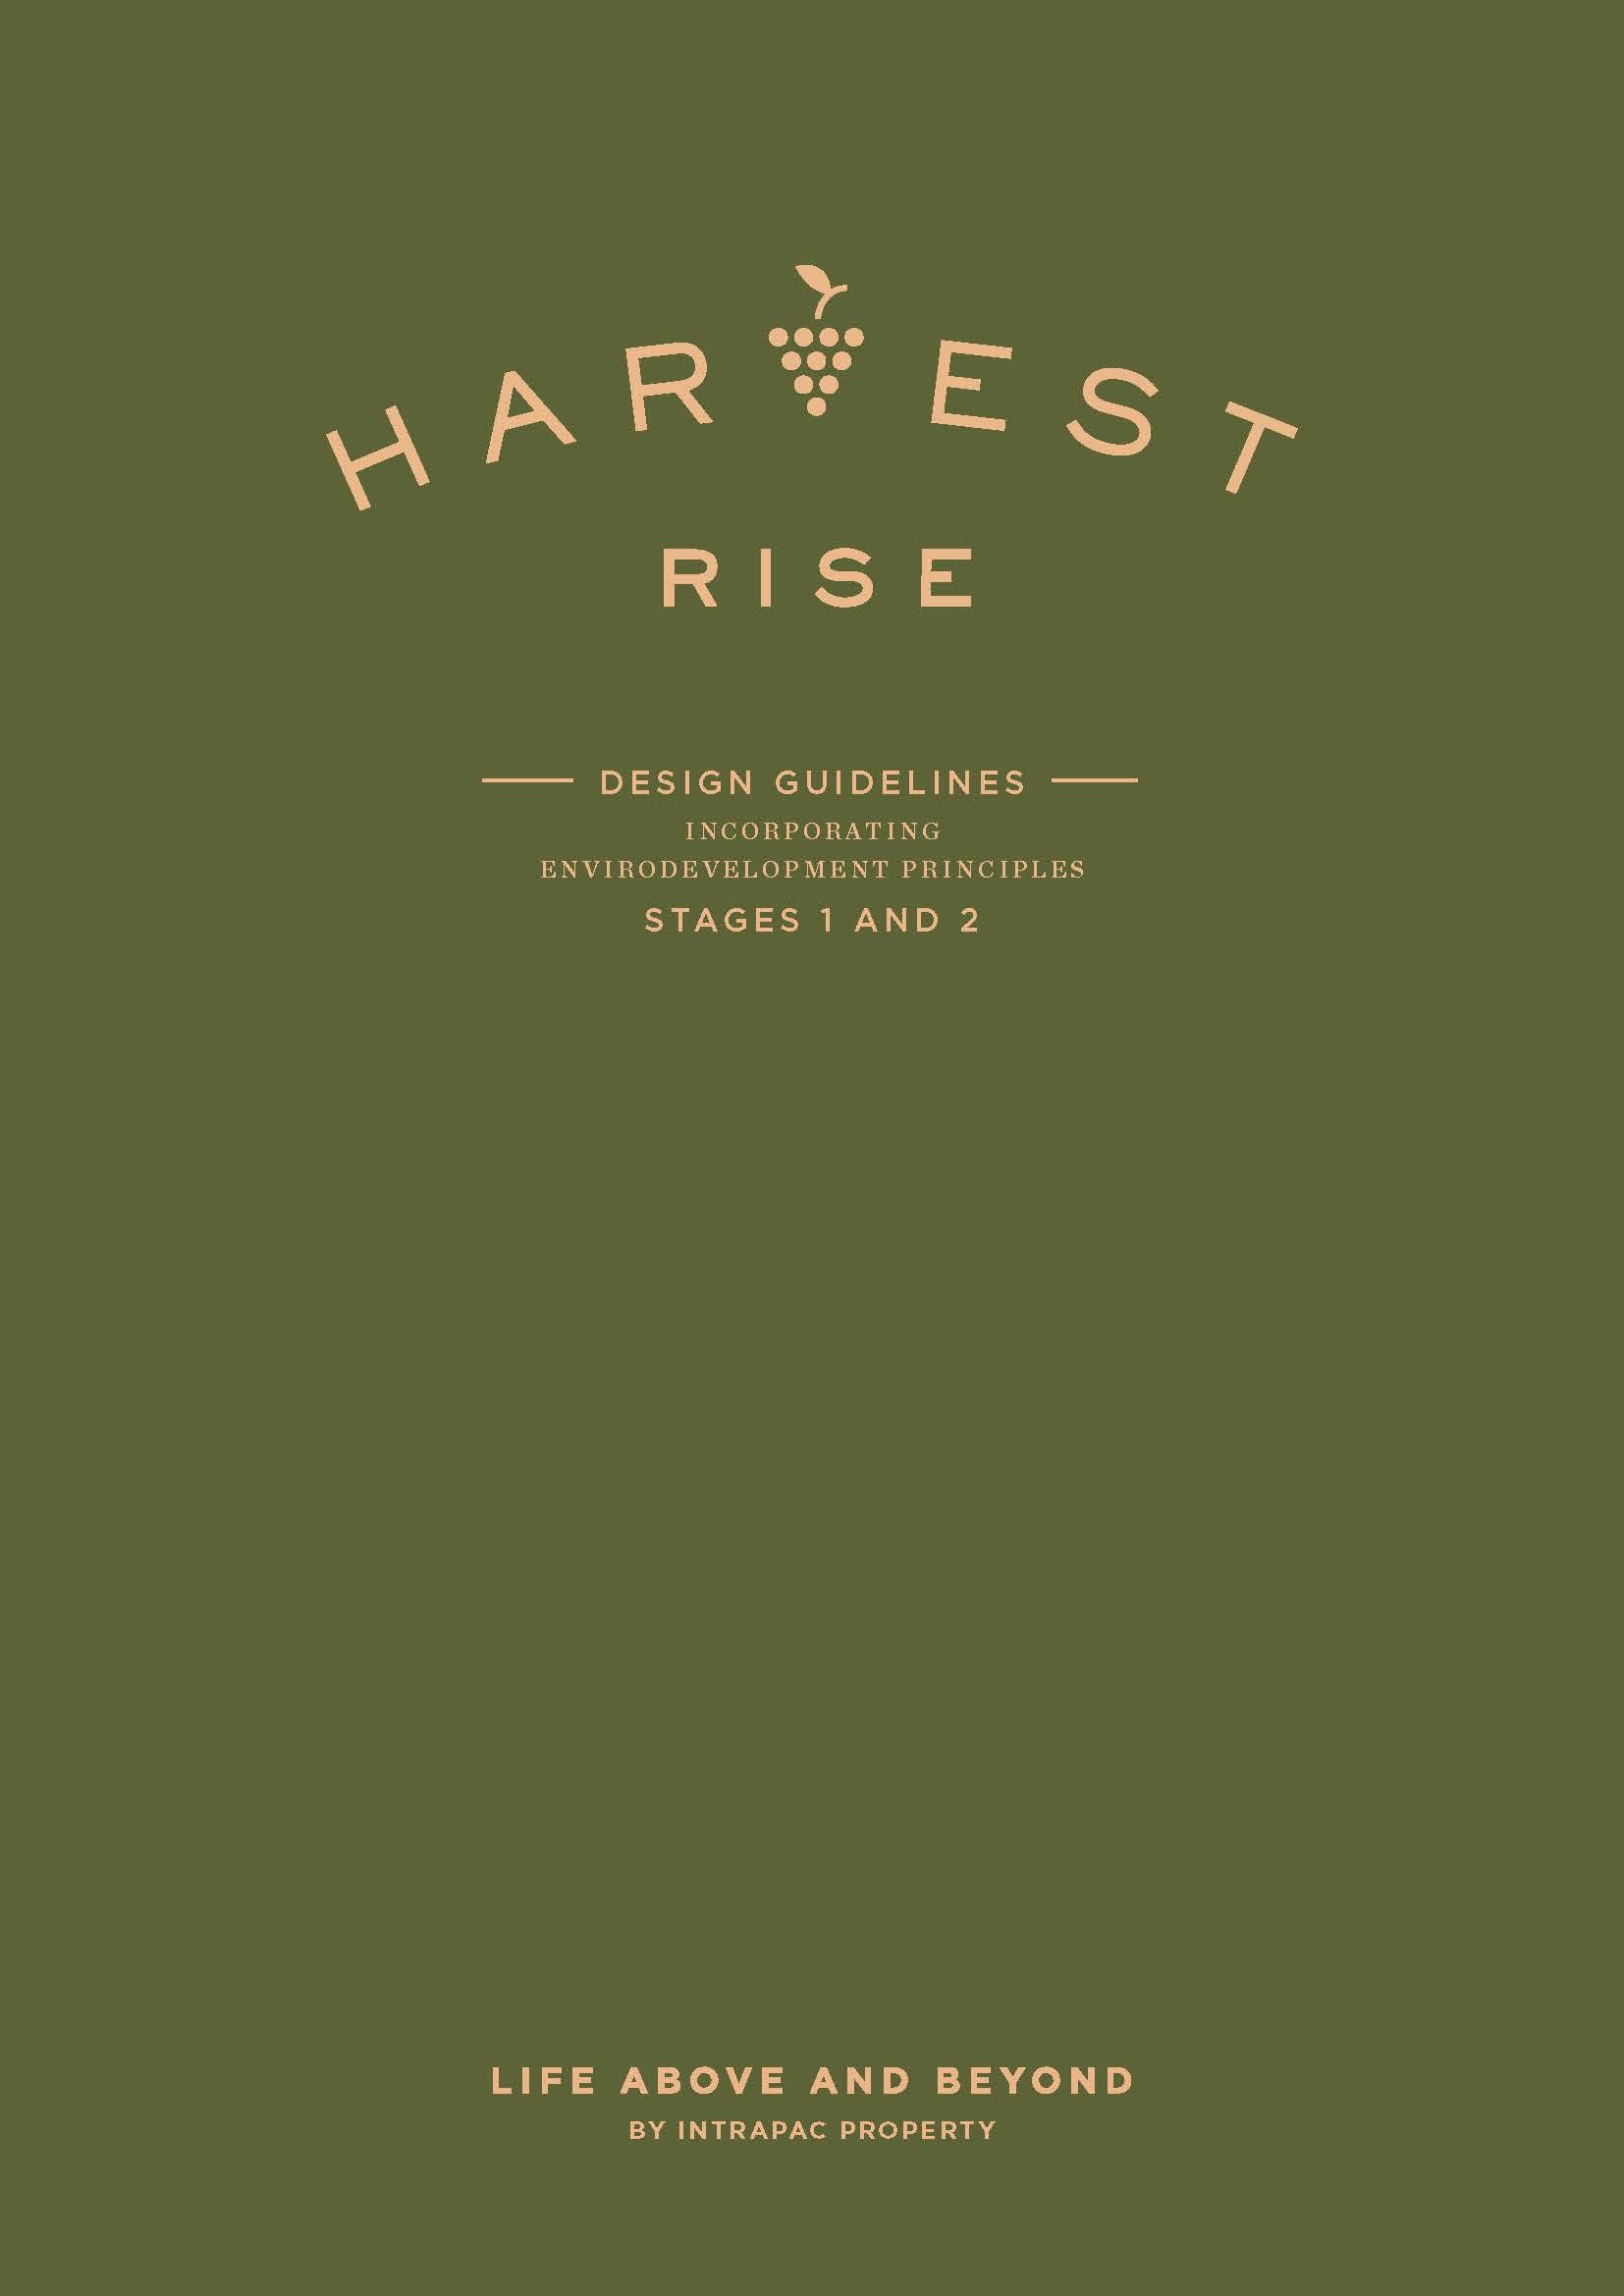 JCD_HARVEST RISE_COVENANTS_COVER PAGE